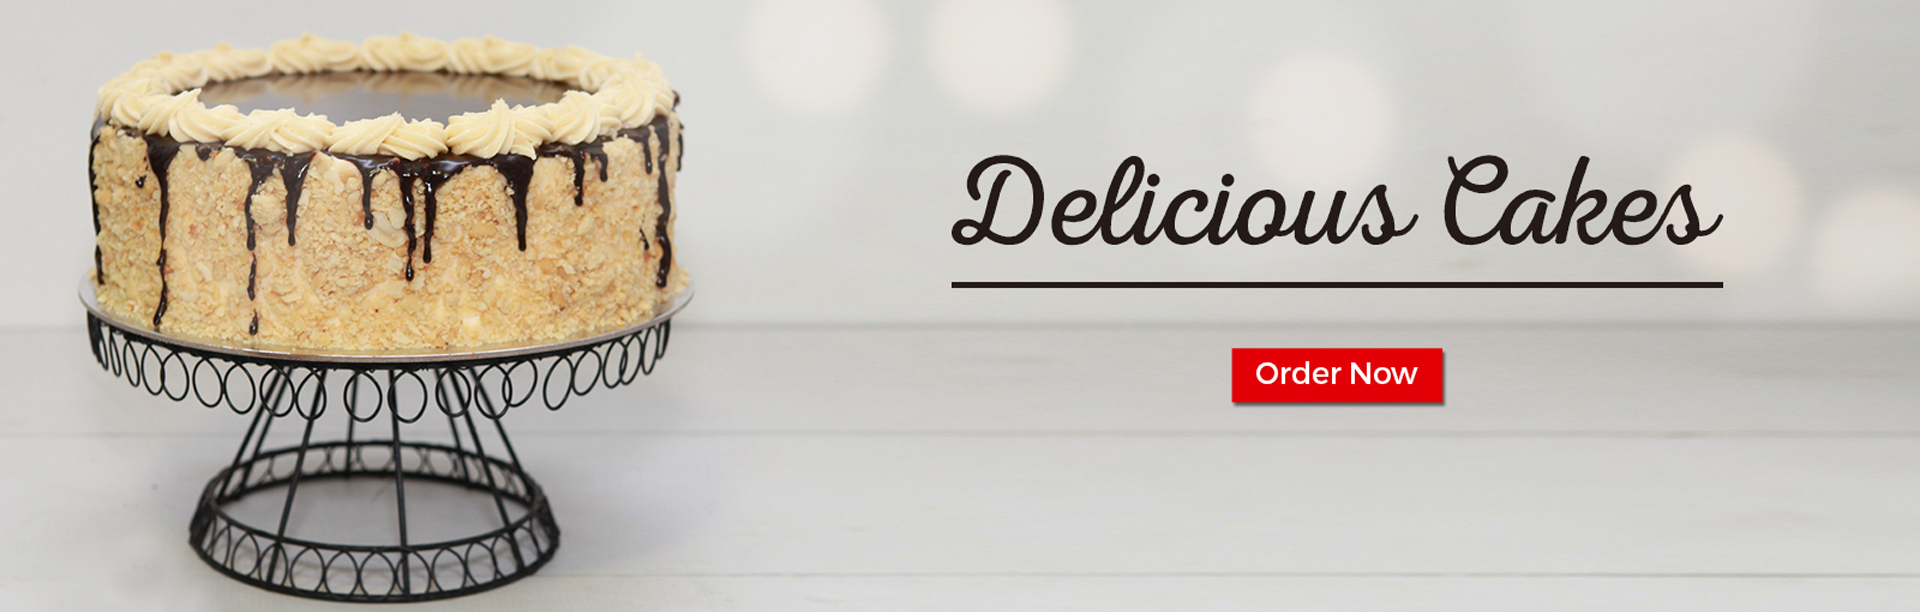 cake delivery online India